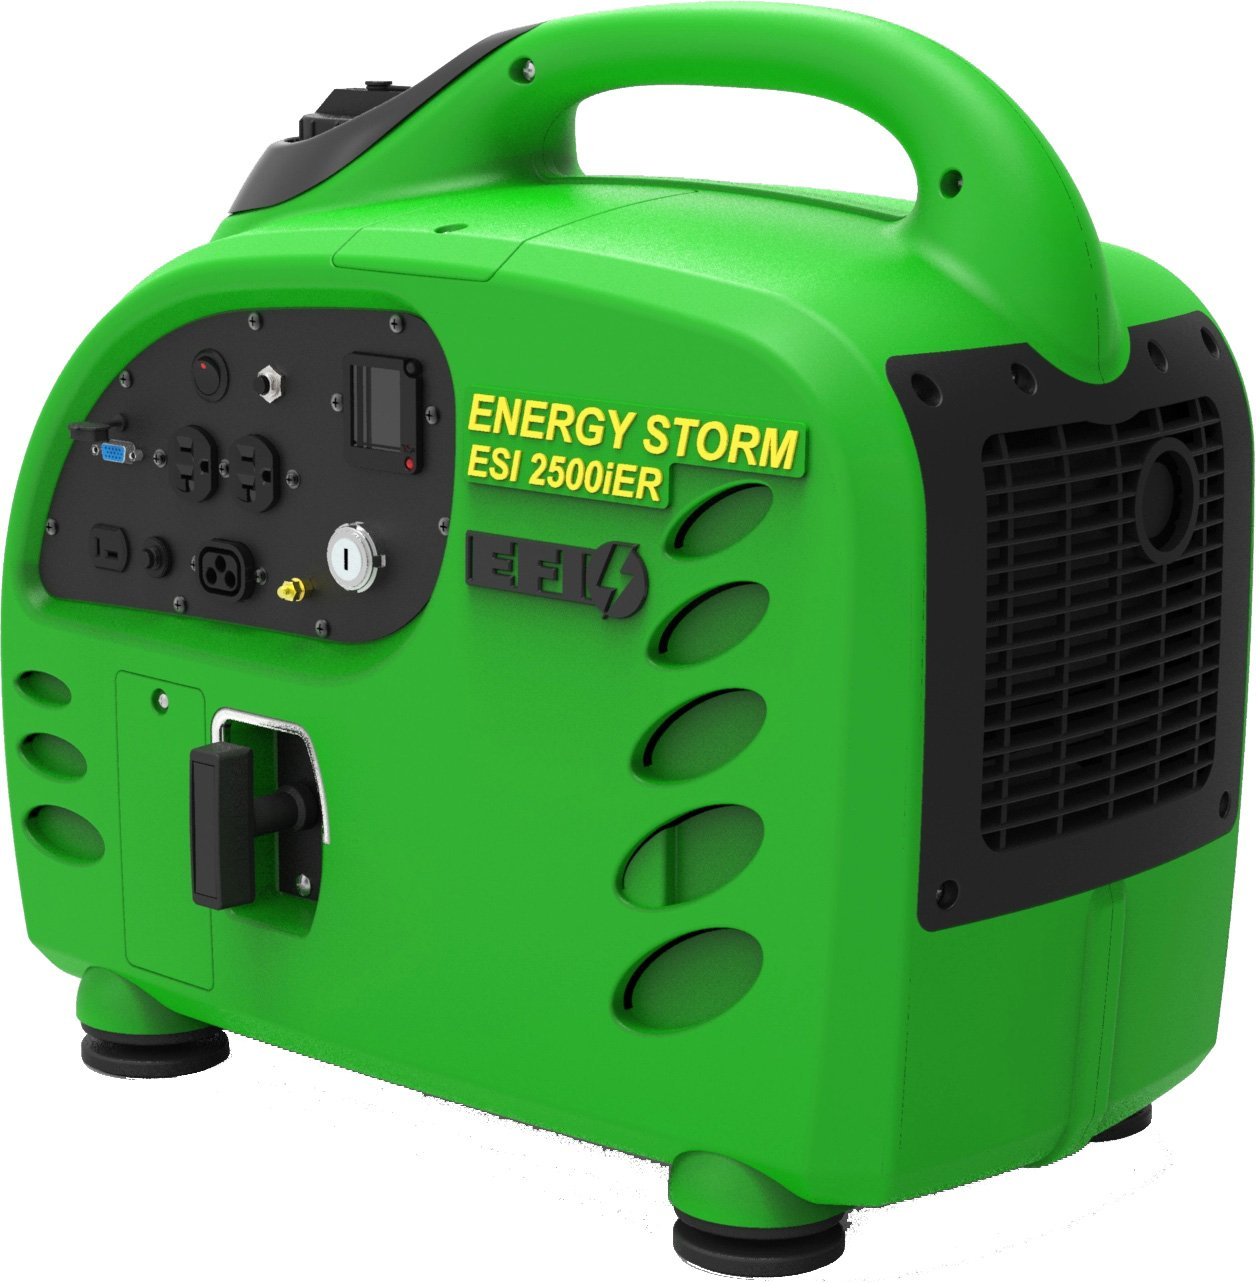 Electronic Fuel Injected 2500w Digital Inverter Generator by ESI